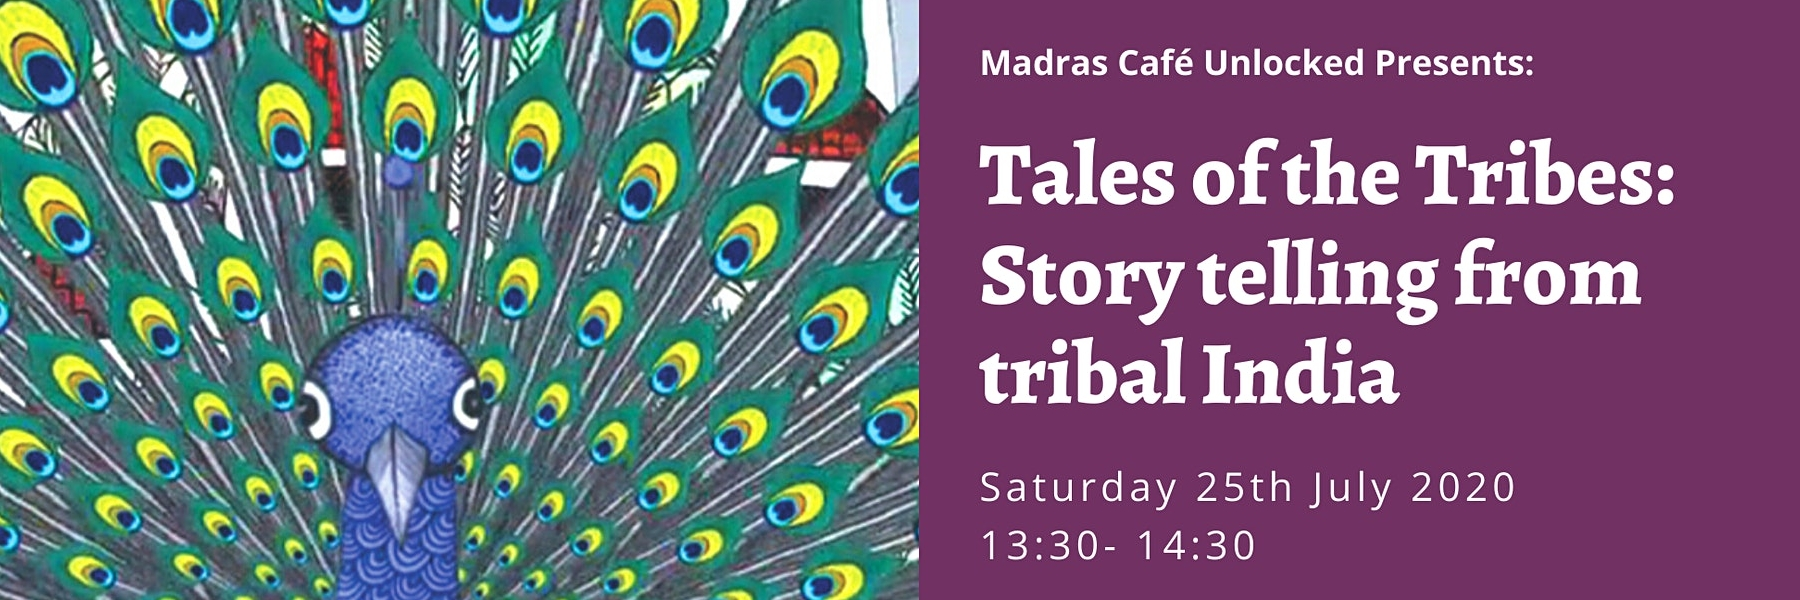 Madras Cafe Unlocked 2020: Tales of the Tribes: Story telling from India